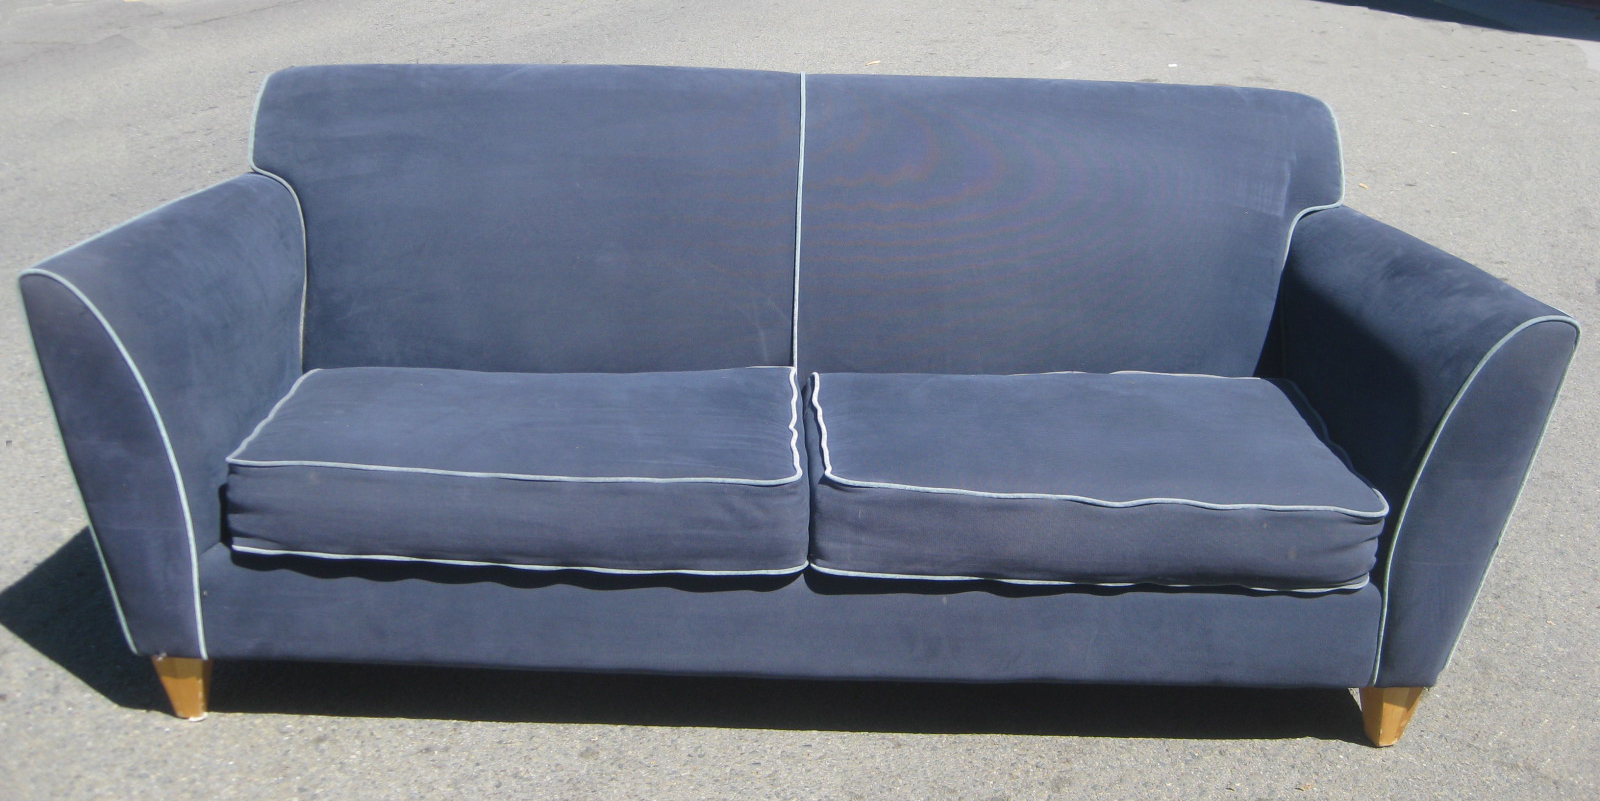 Sold Blue Sofa With White Piping 45